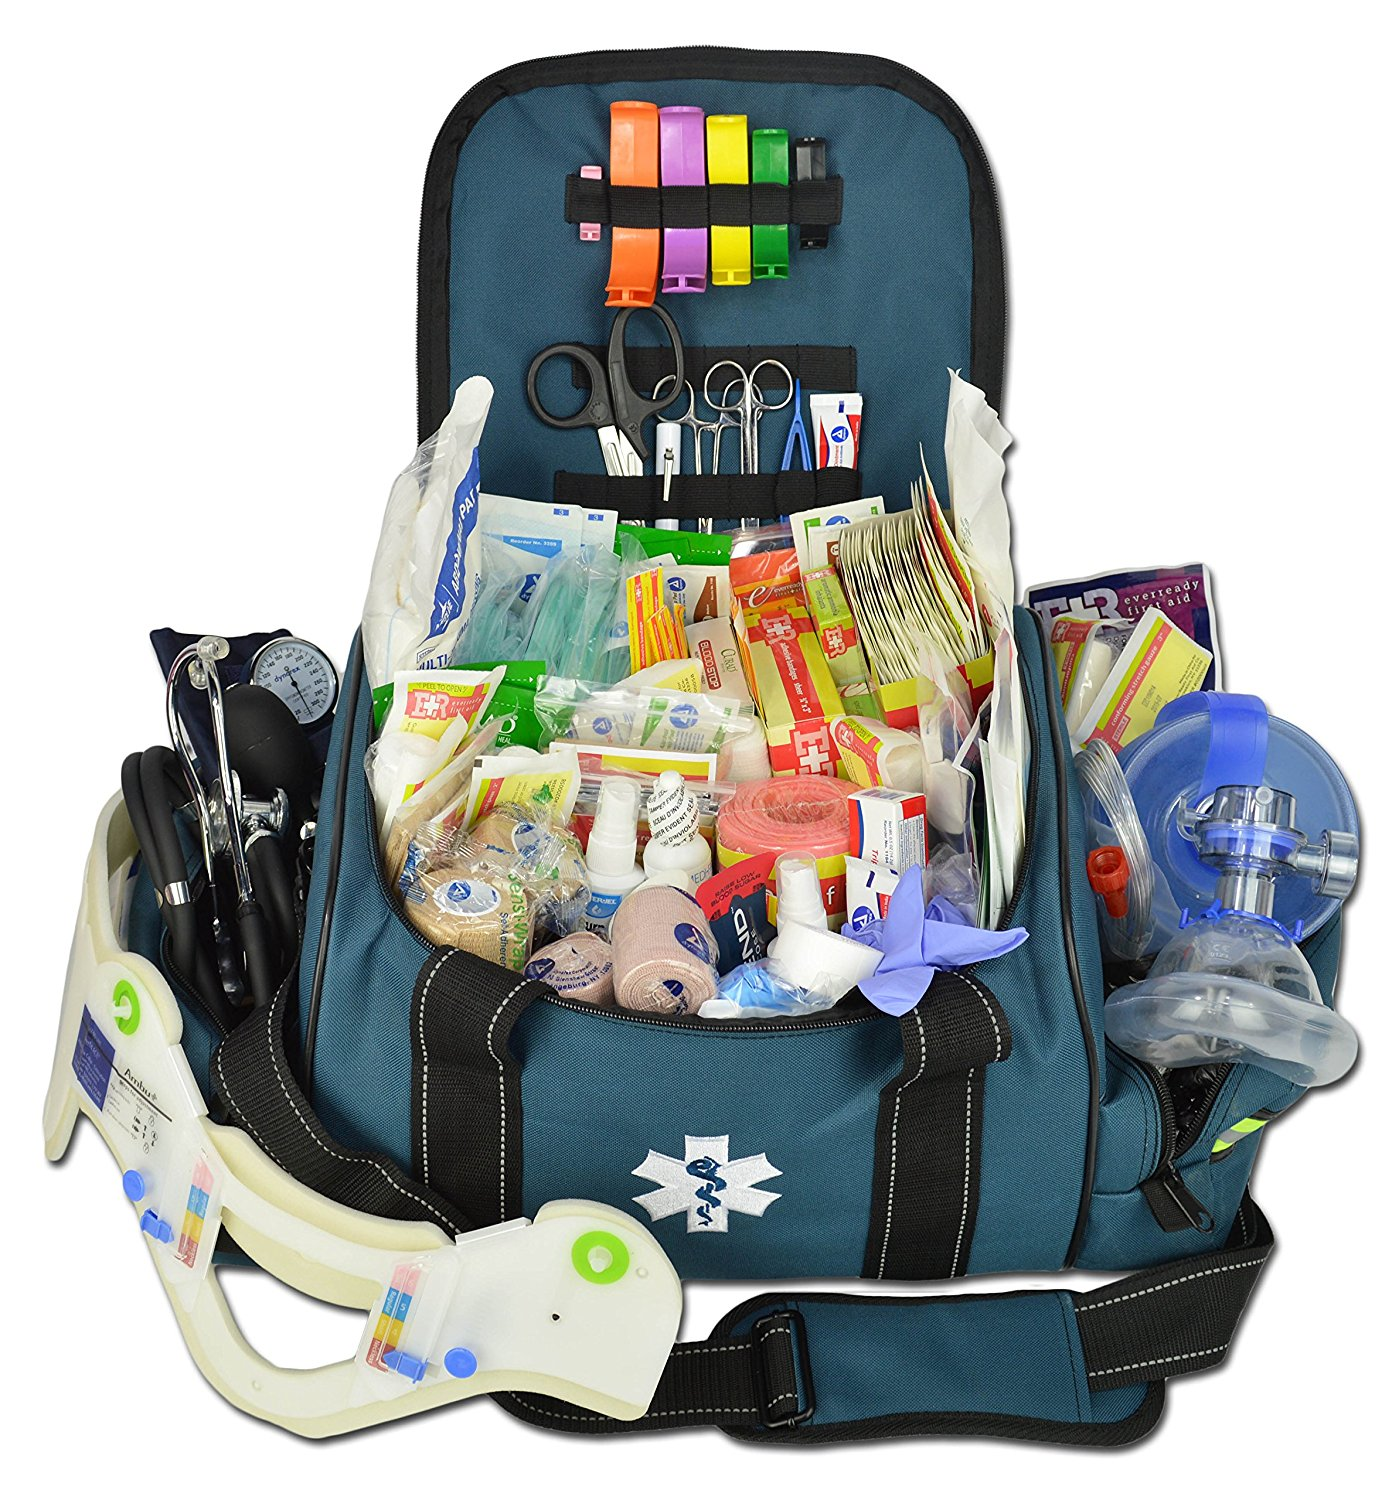 Lightning X Deluxe Stocked Large Emt First Aid Trauma Bag Fill Kit W Emergency Medical Supplies